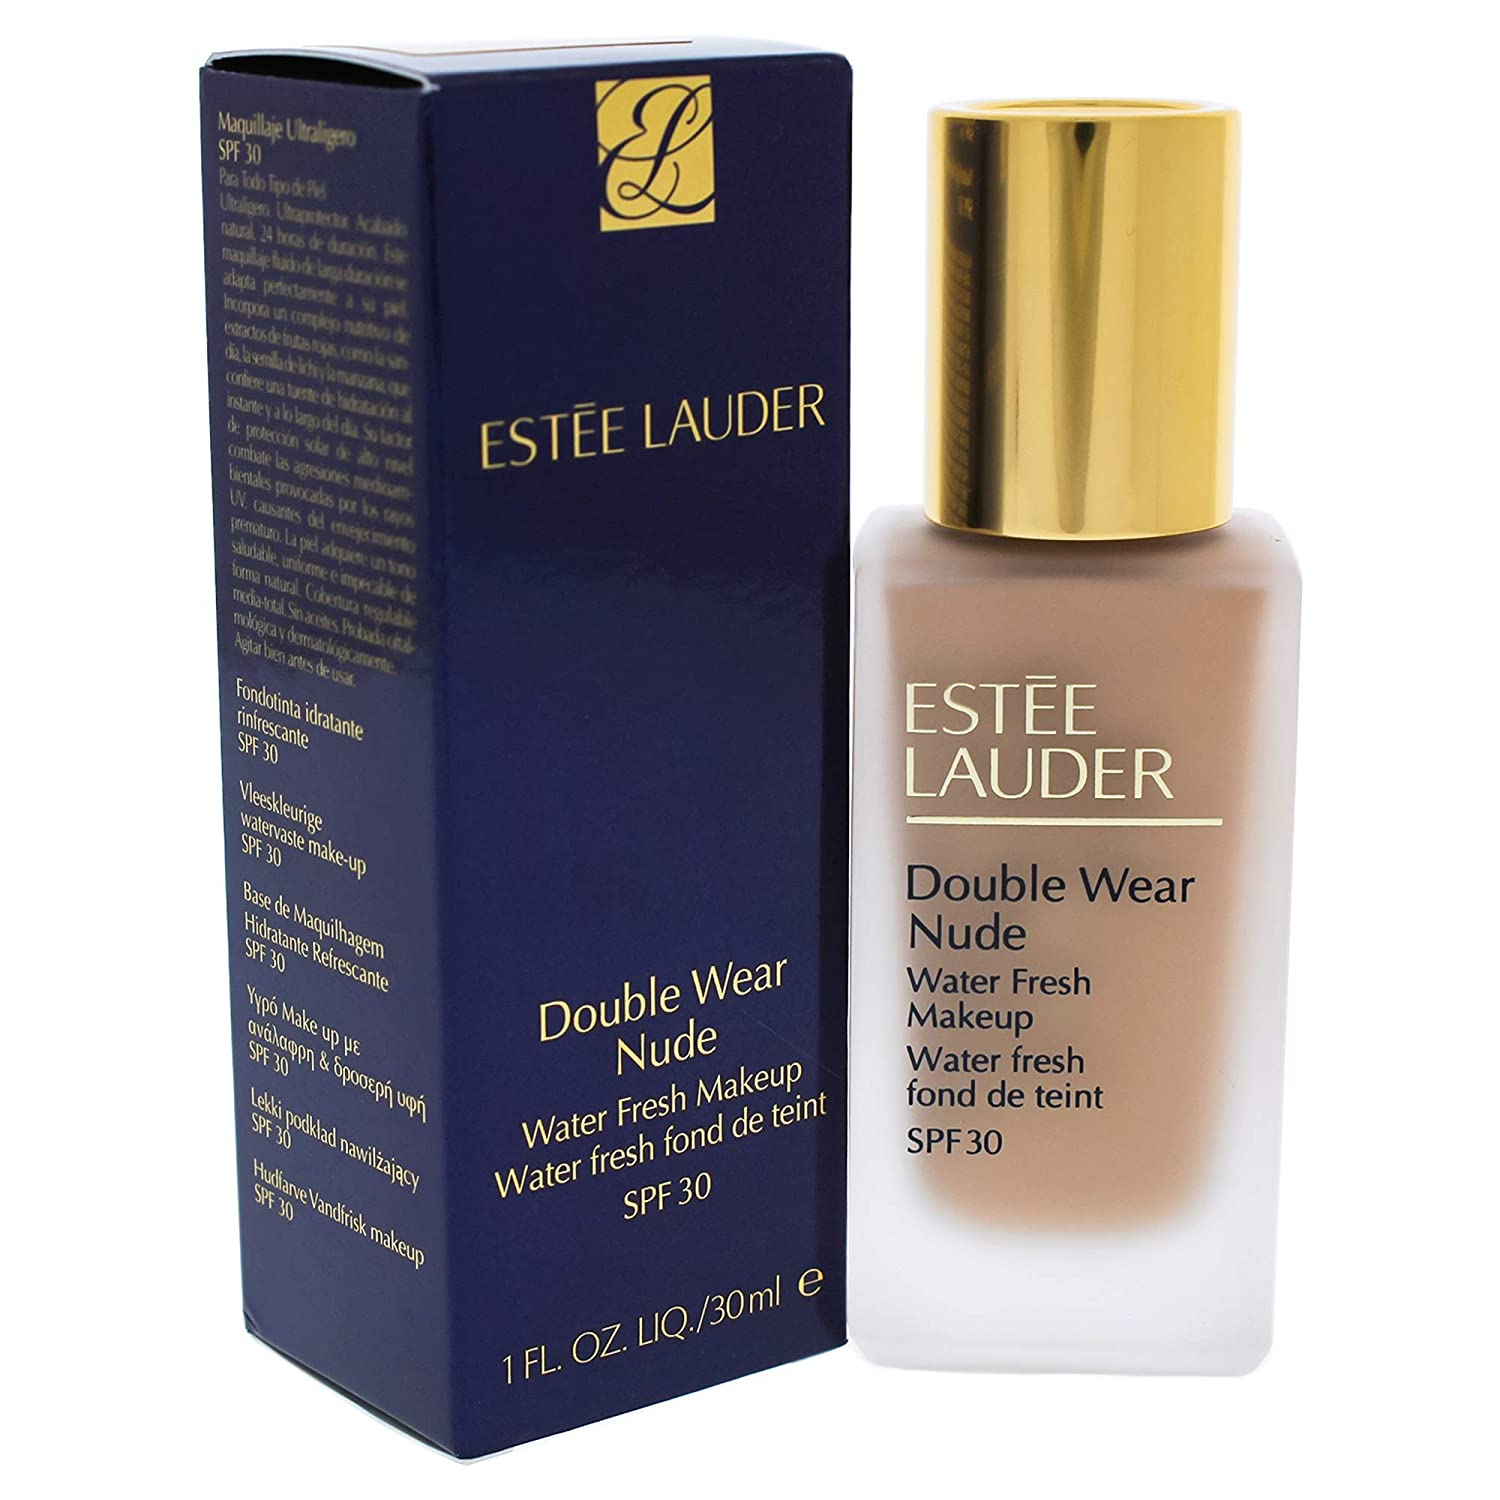 Estee Lauder Double Wear Nude Water Fresh Makeup Spf 30, 3n1 Ivory Beige, 1 Ounce